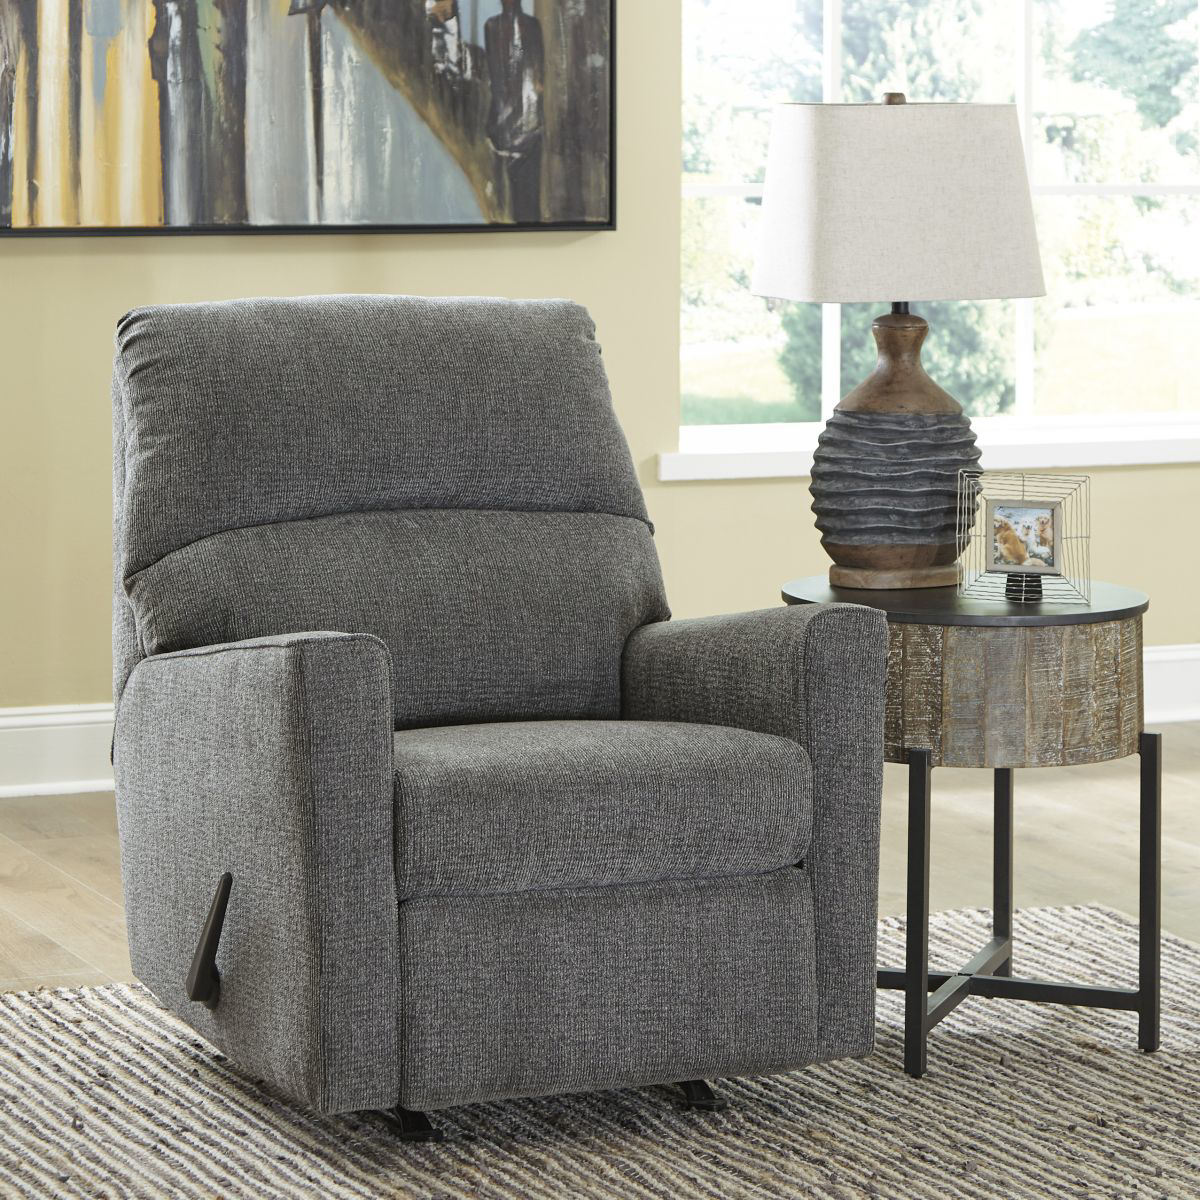 Picture of Dalhart Recliner